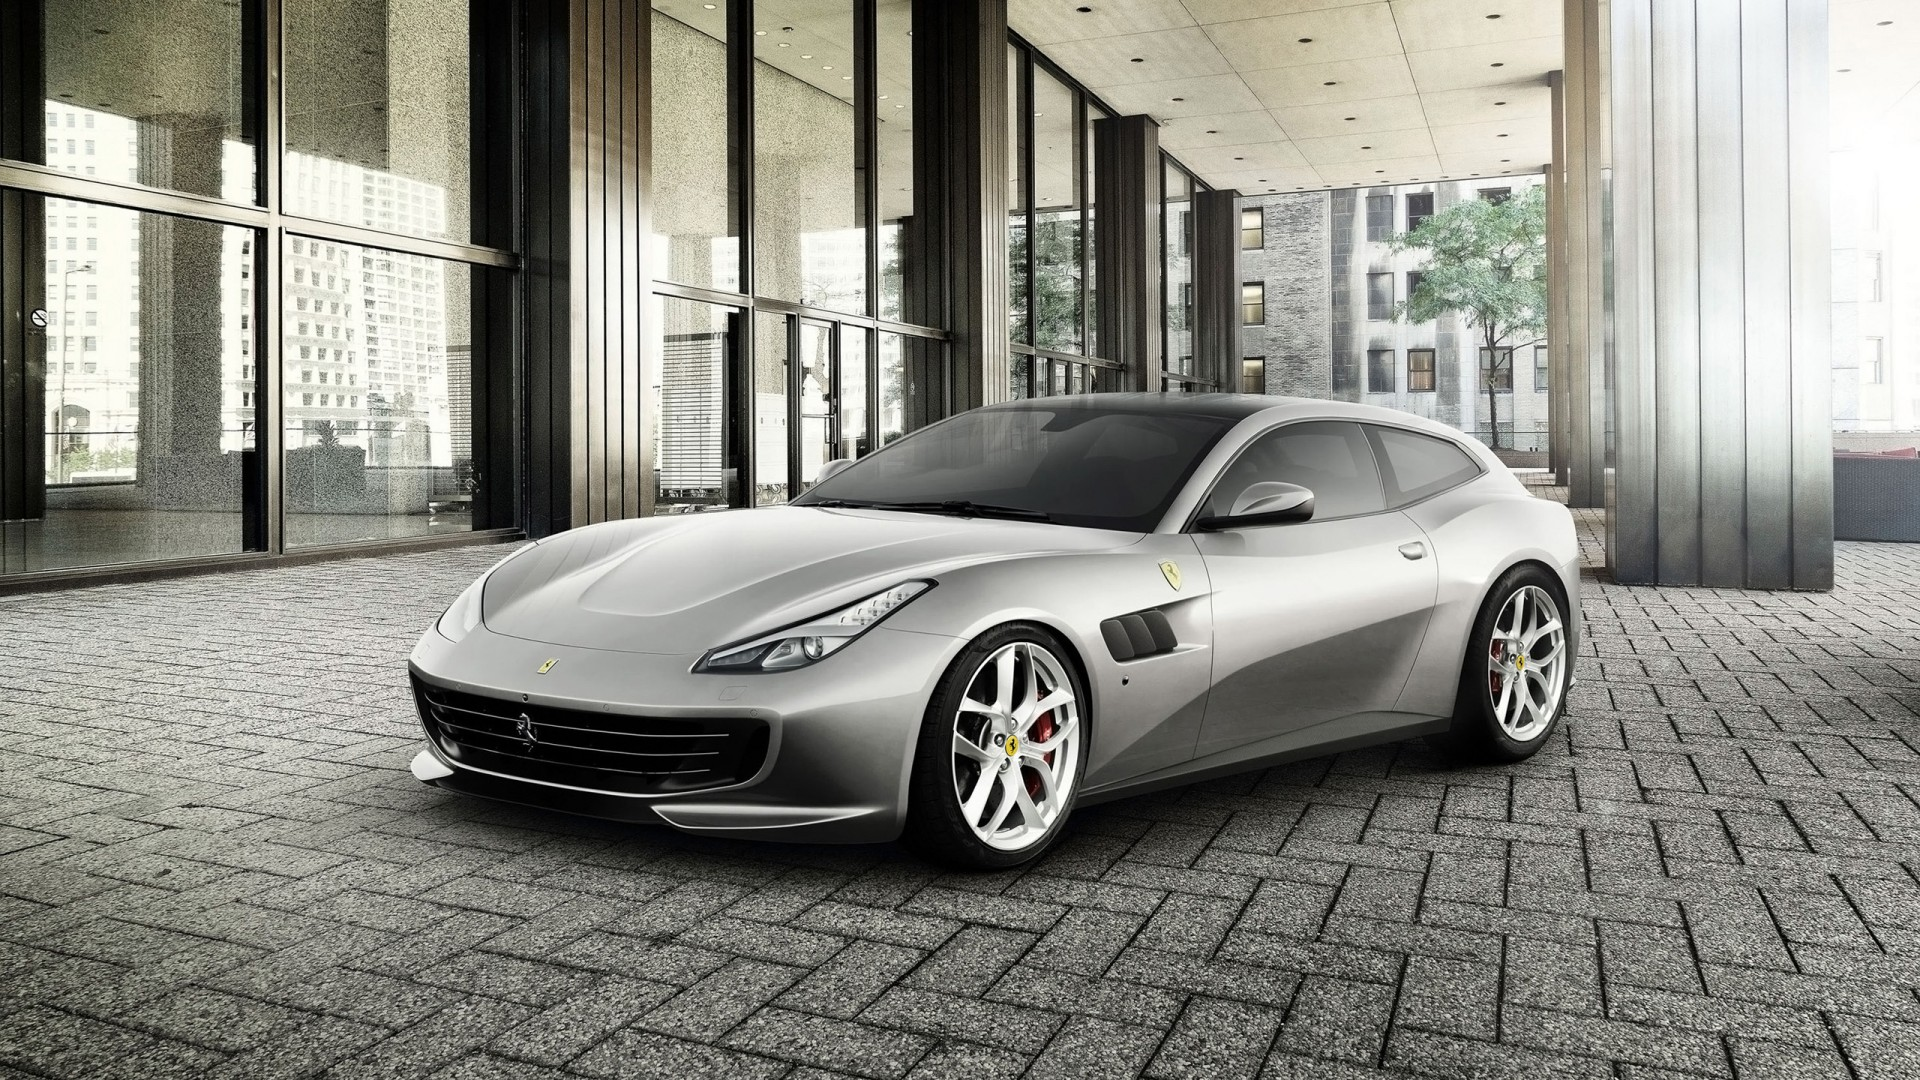 2017 Ferrari Gtc4lusso T 3 Wallpaper Hd Car Wallpapers Id 7040